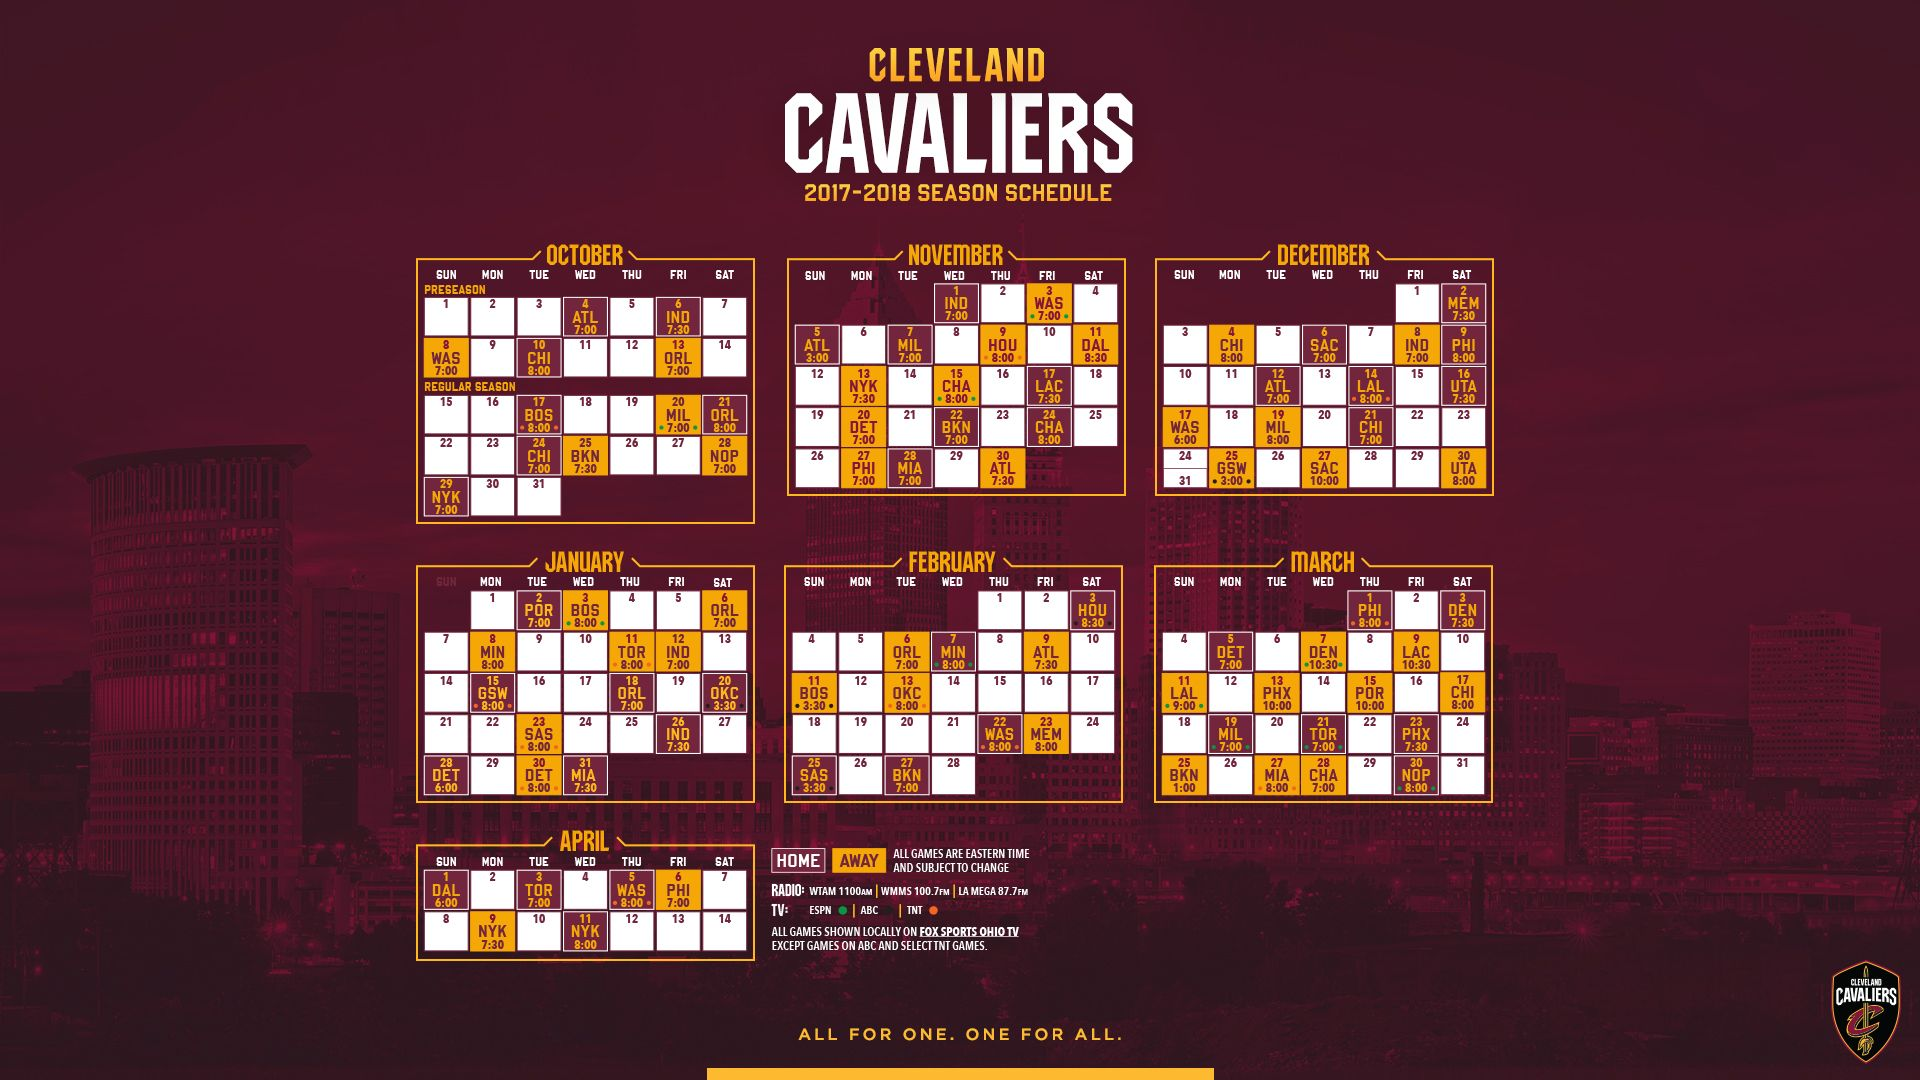 cleveland cavaliers 2017-18 schedule wallpaper | wallpapers